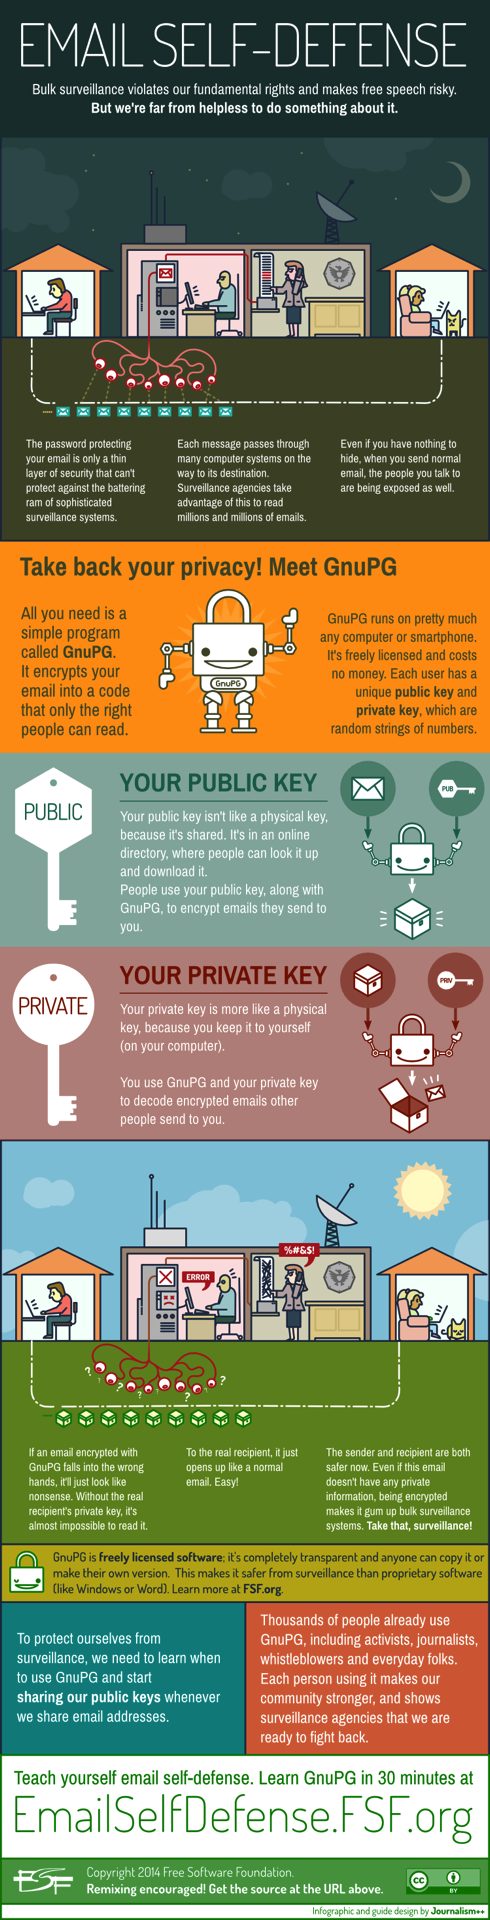 Email Self Defense   a guide to fighting surveillance with GnuPG encryption full infographic